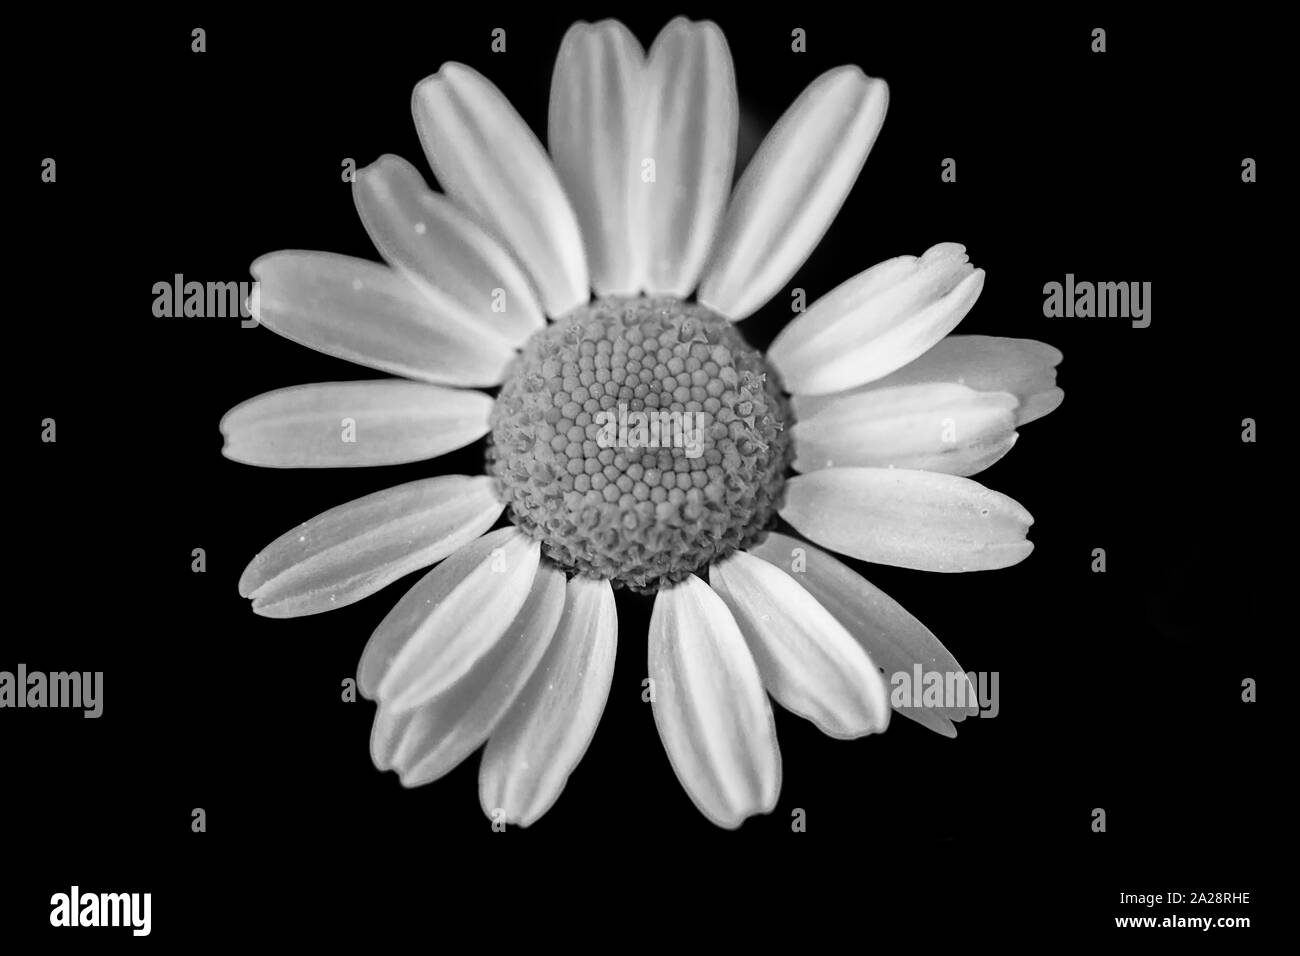 Macro photo of daisy. Black and white. White petals on a black background Stock Photo